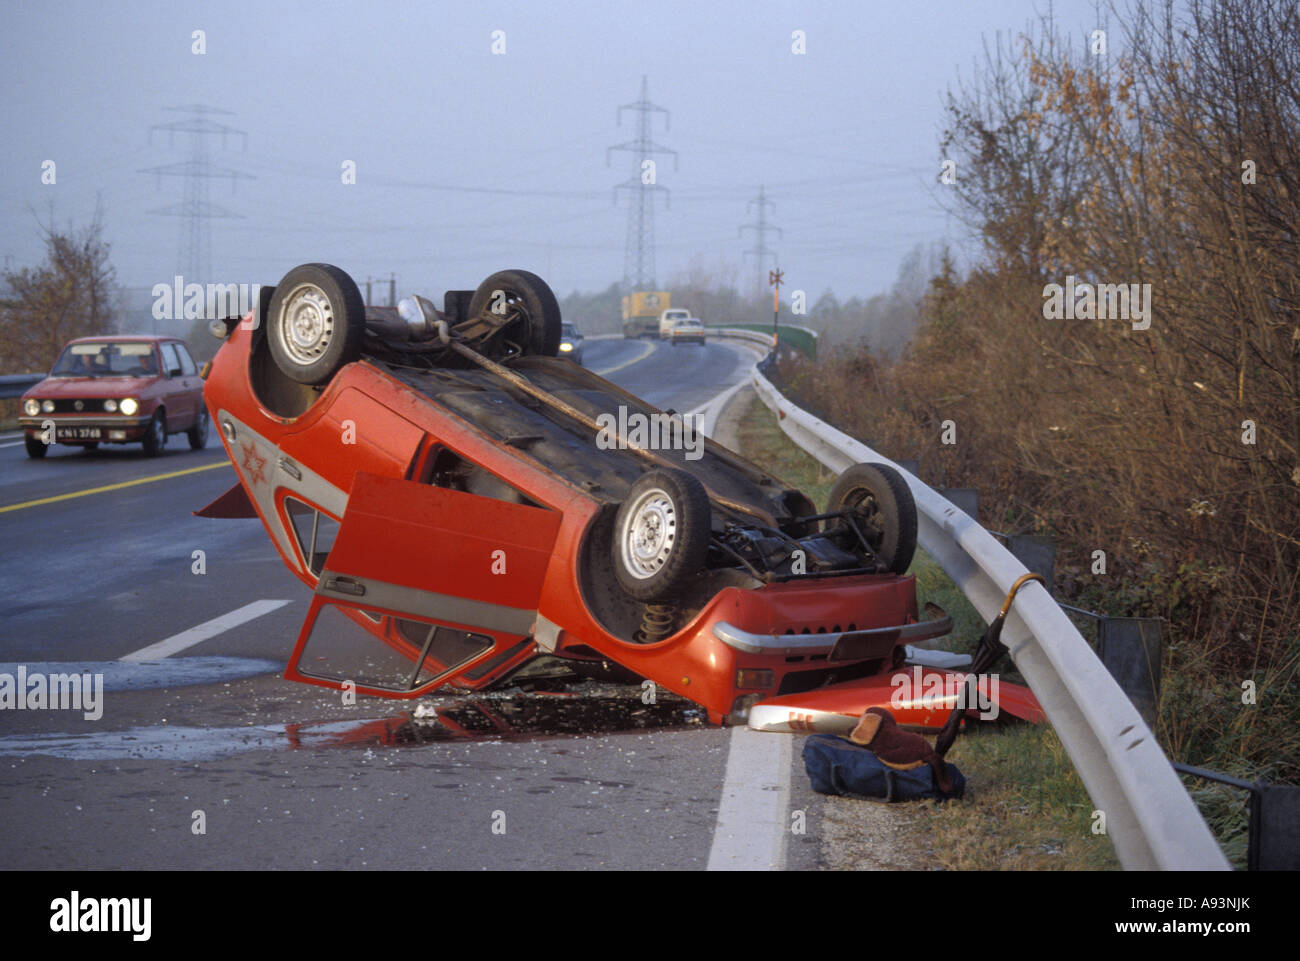 Car accident car is upside down on the road stock image